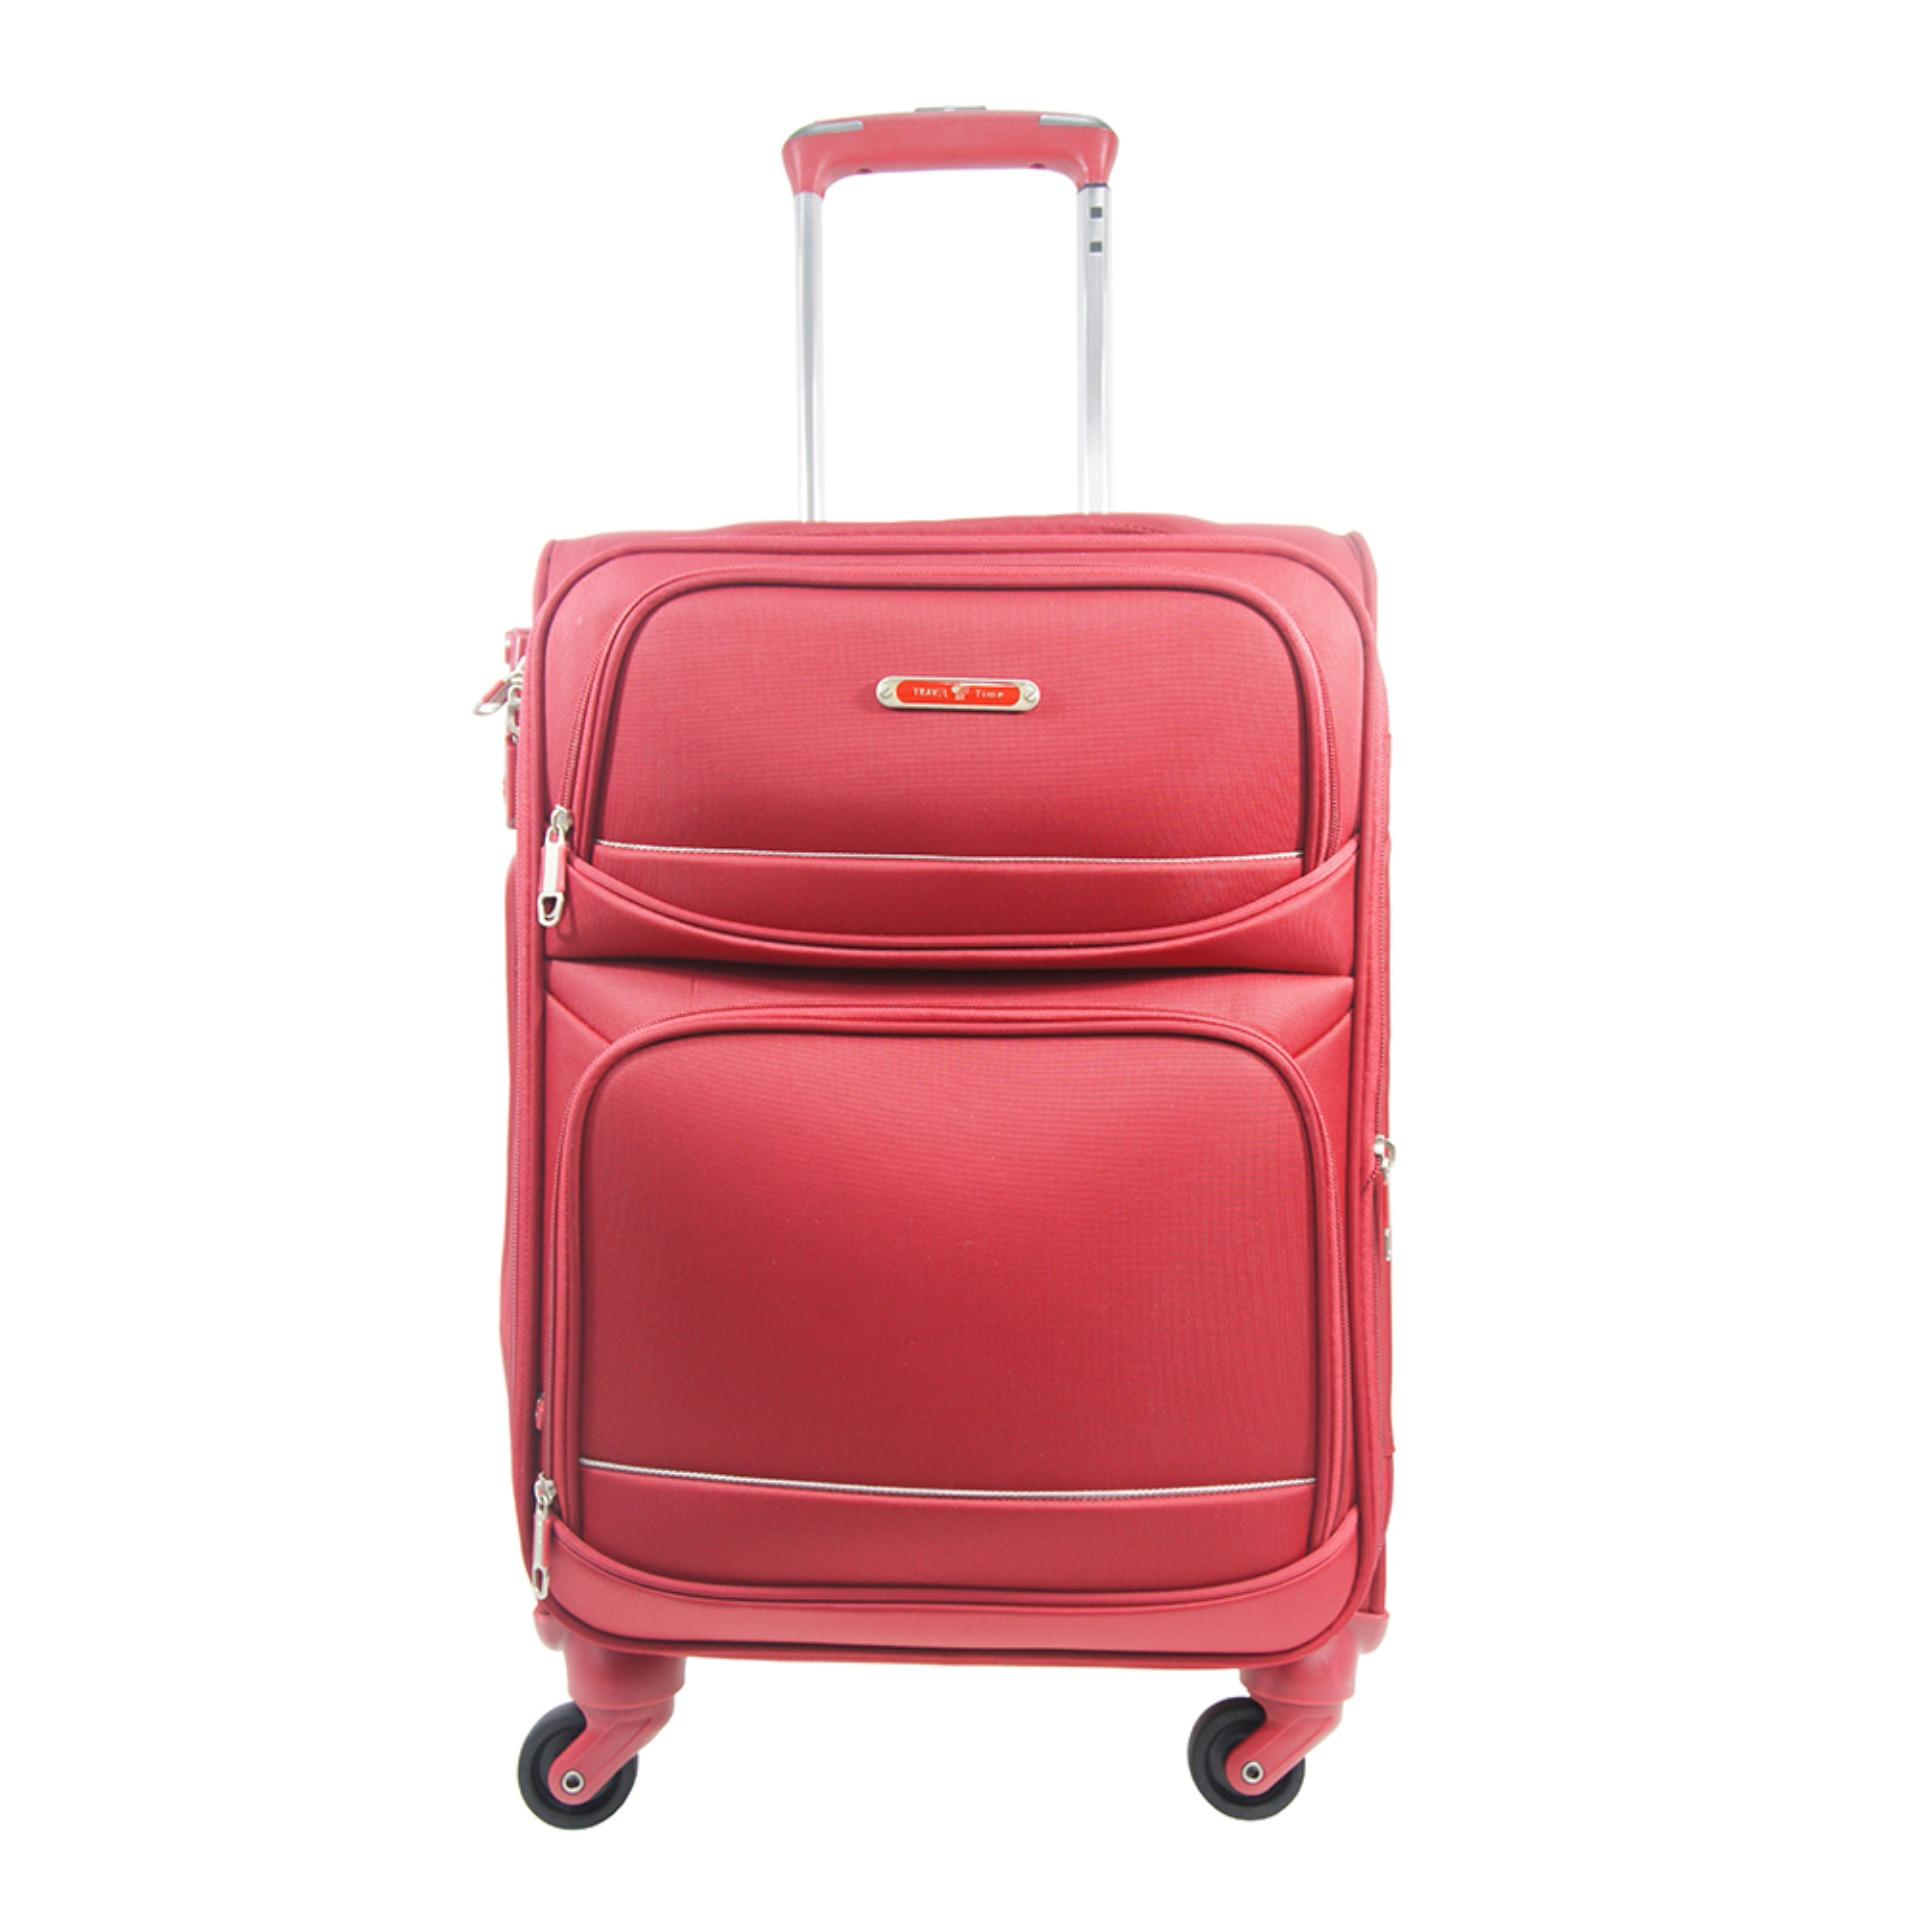 Situs Review Traveltime Tsa5183 01 Tas Koper Kabin Softcase 18 Inch The Secure Anti Theft Zipper Tas Traveling 4 Roda